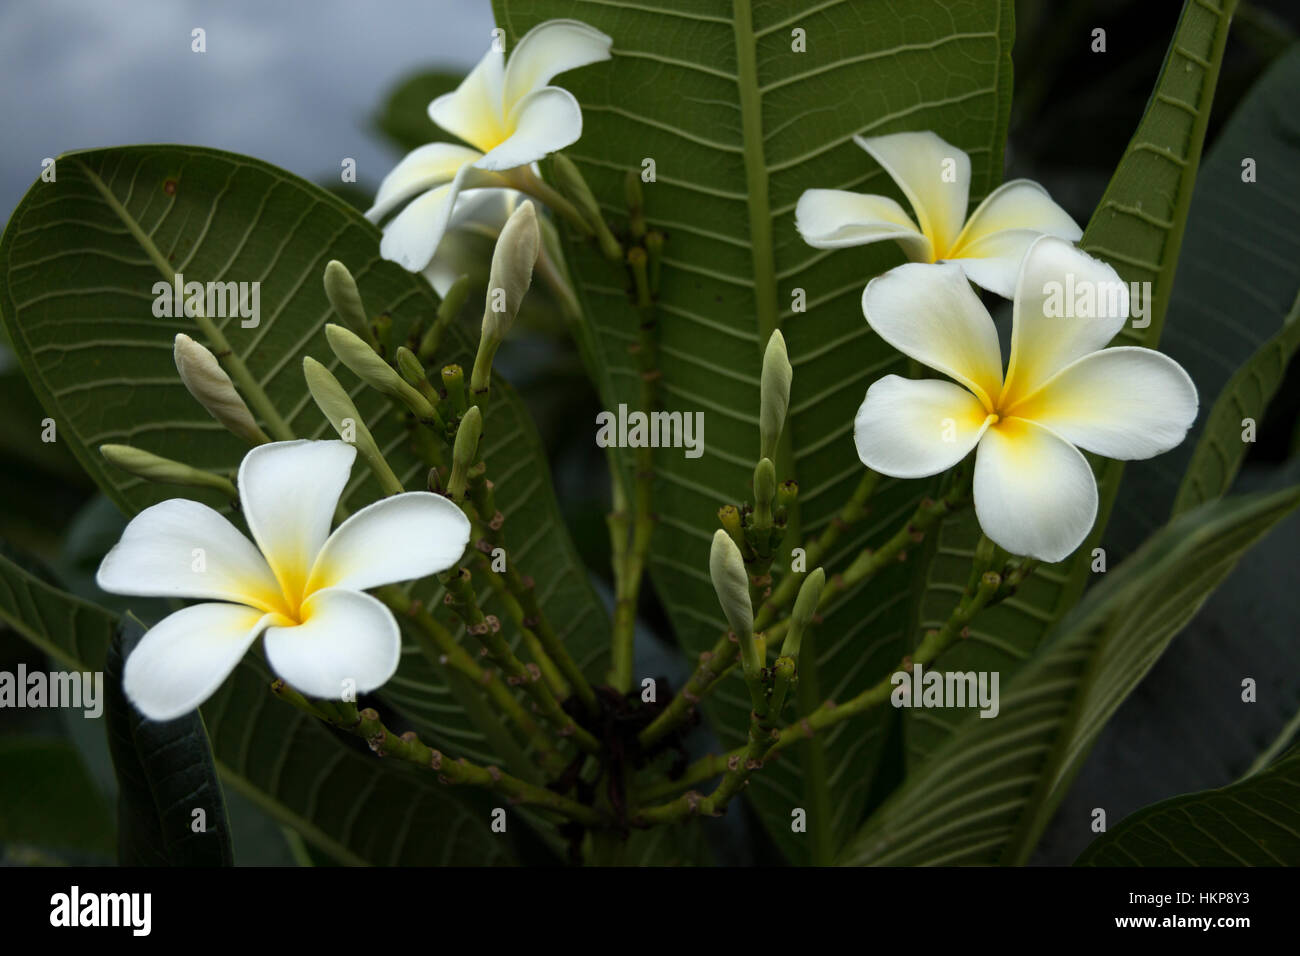 five petal white flowers frangipani ( plumeria ) with yellow